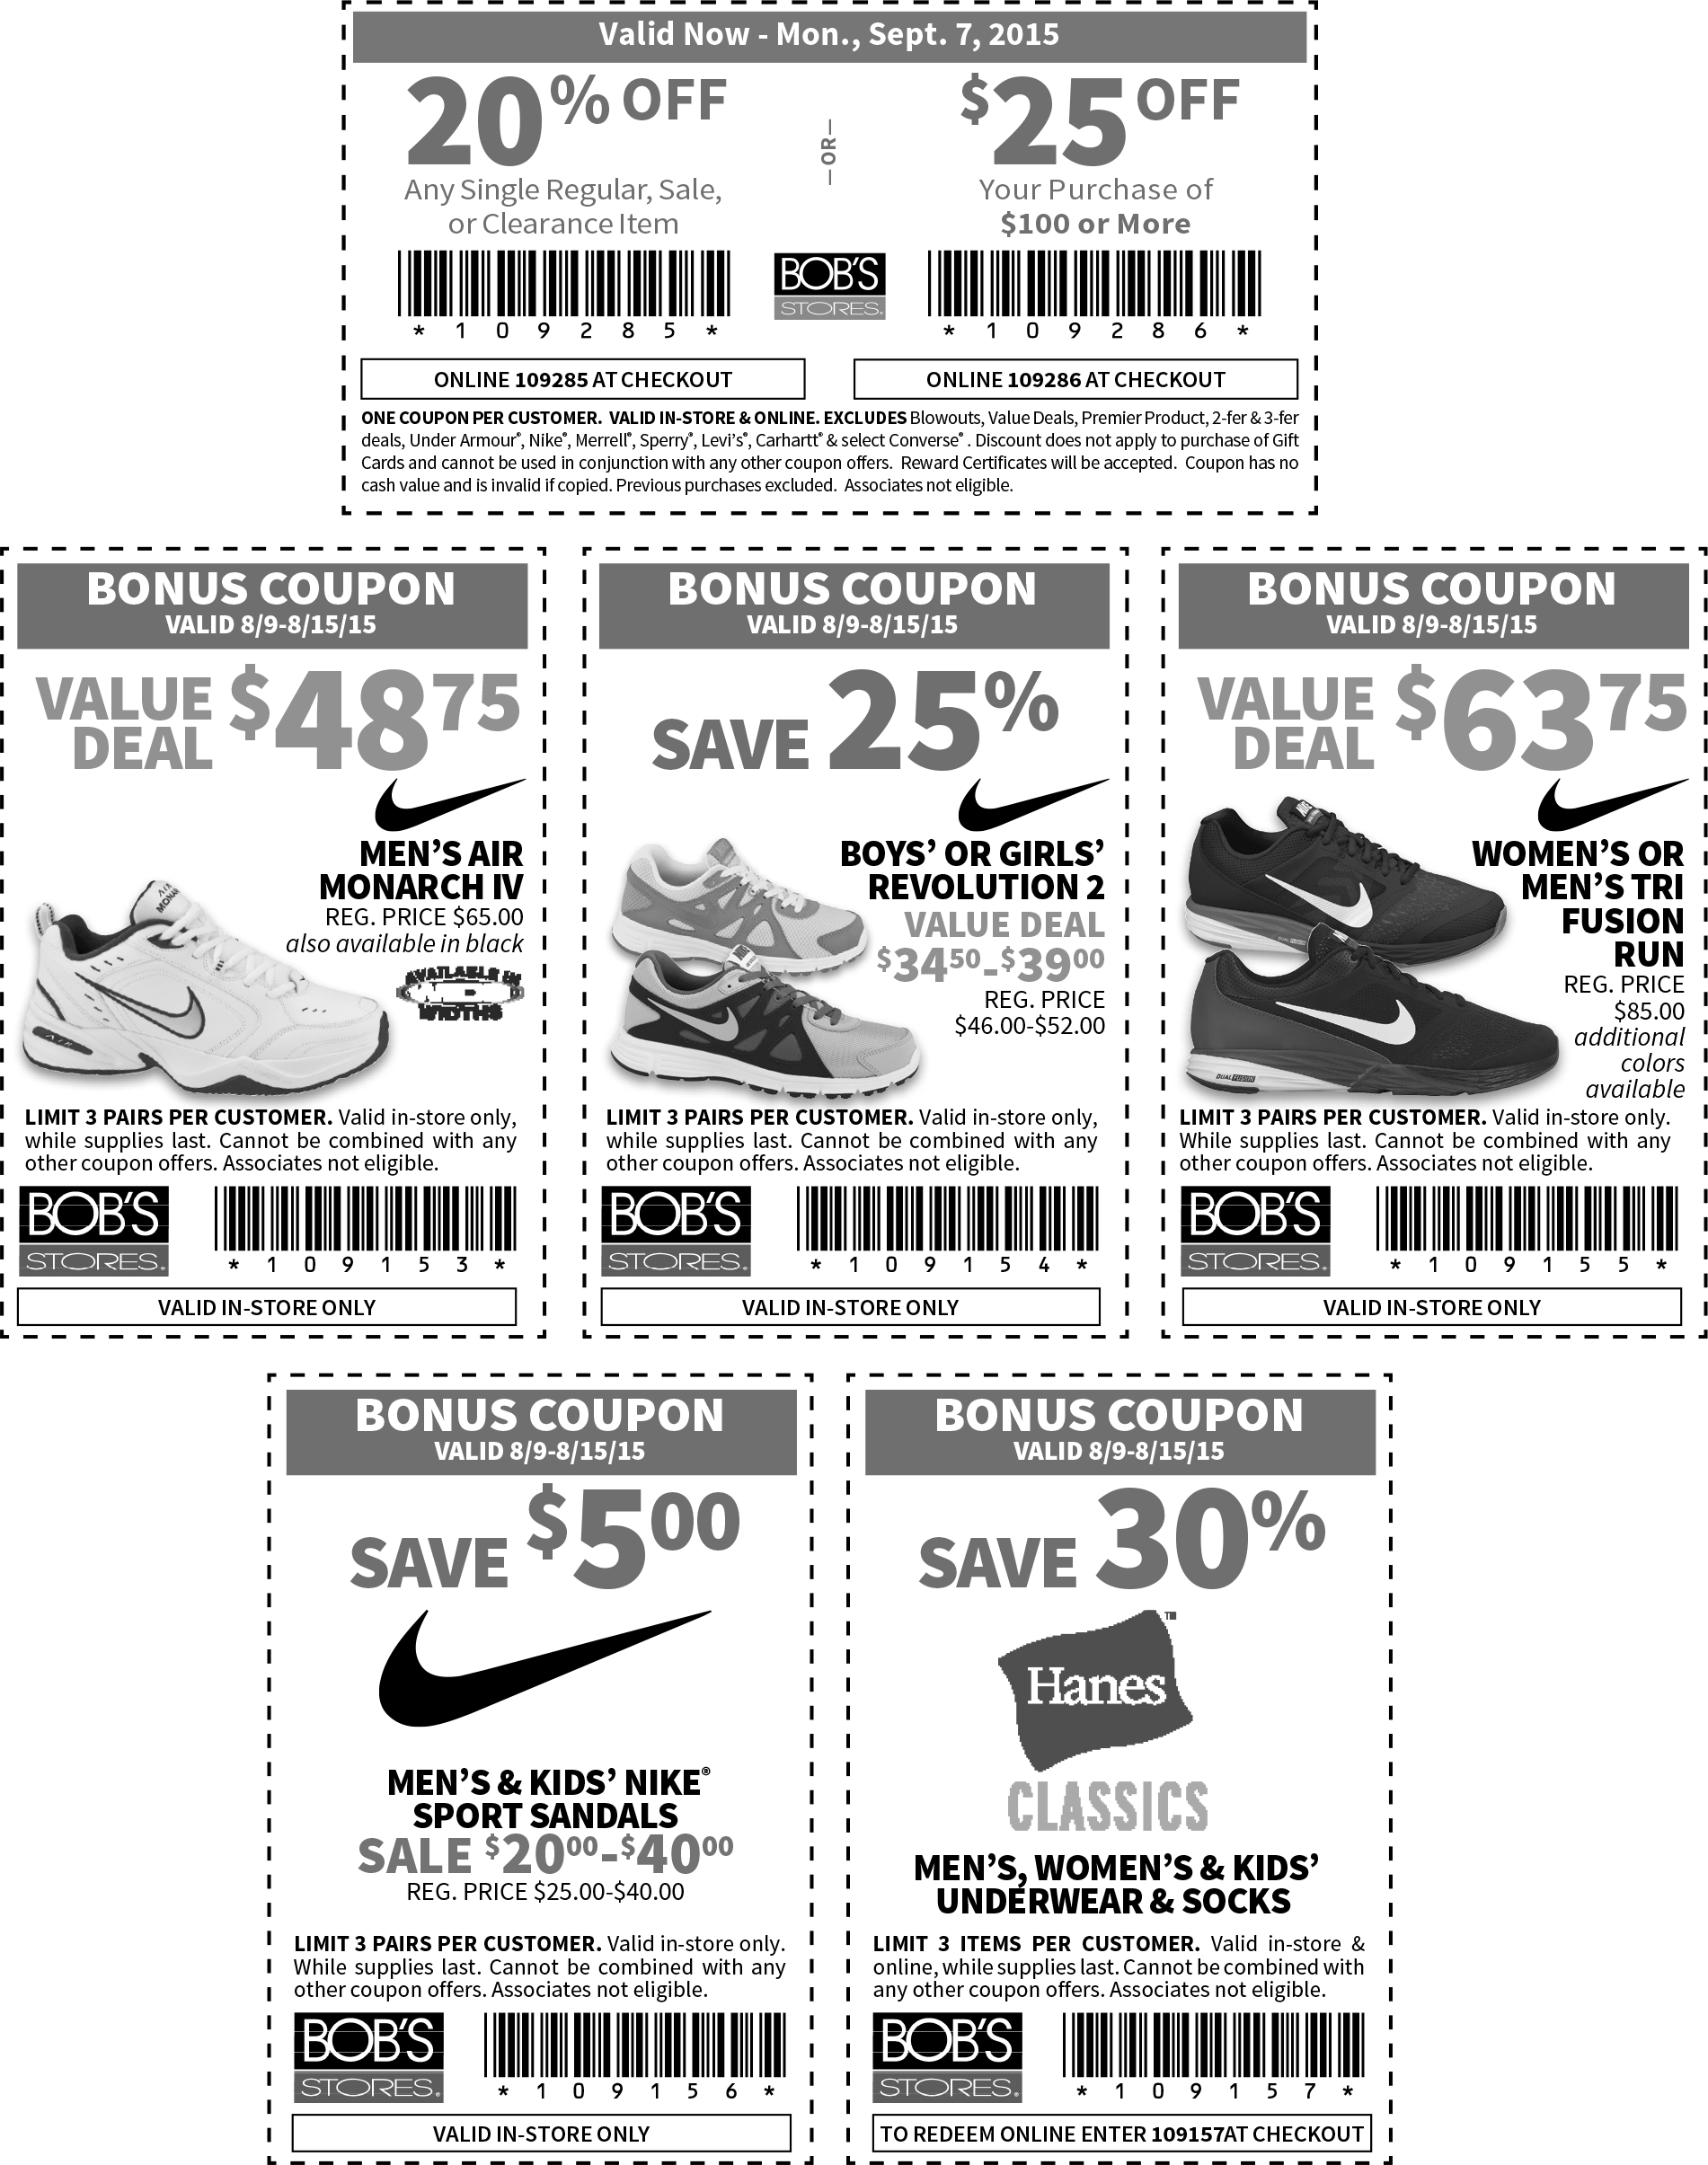 Bobs Stores Coupon September 2018 20% off a single item & more at Bobs Stores, or online via promo code 109285